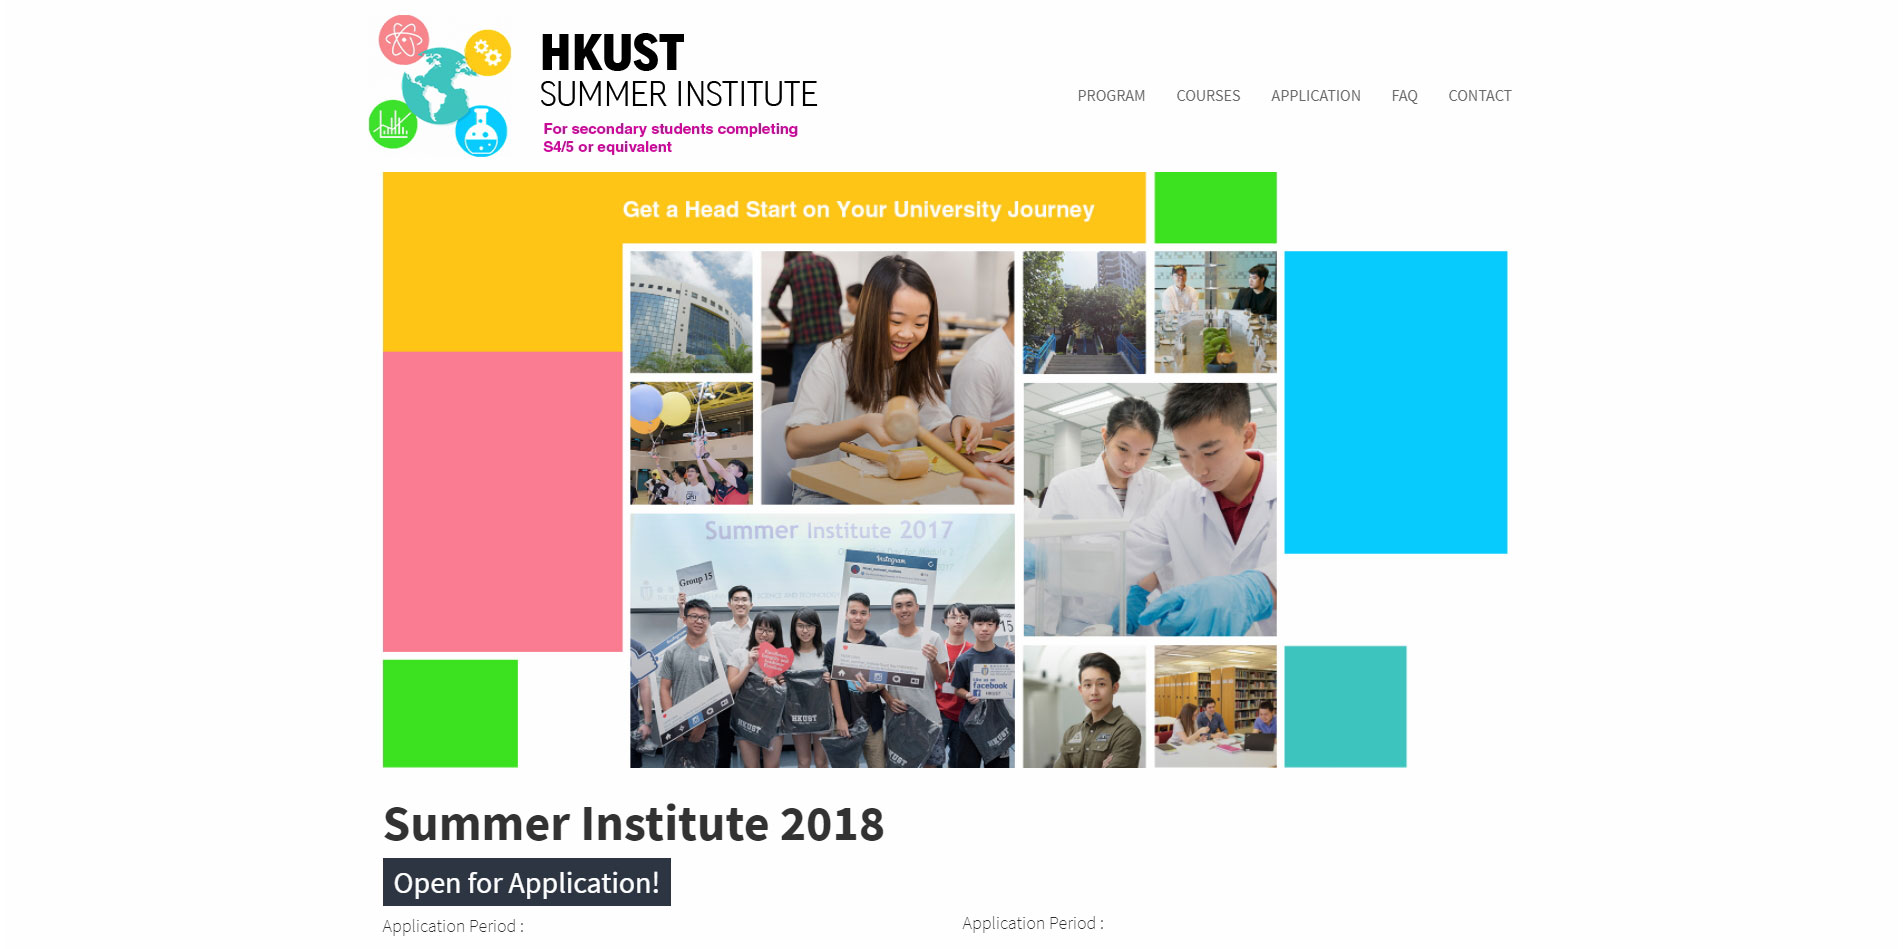 HKUST Summer Institute home